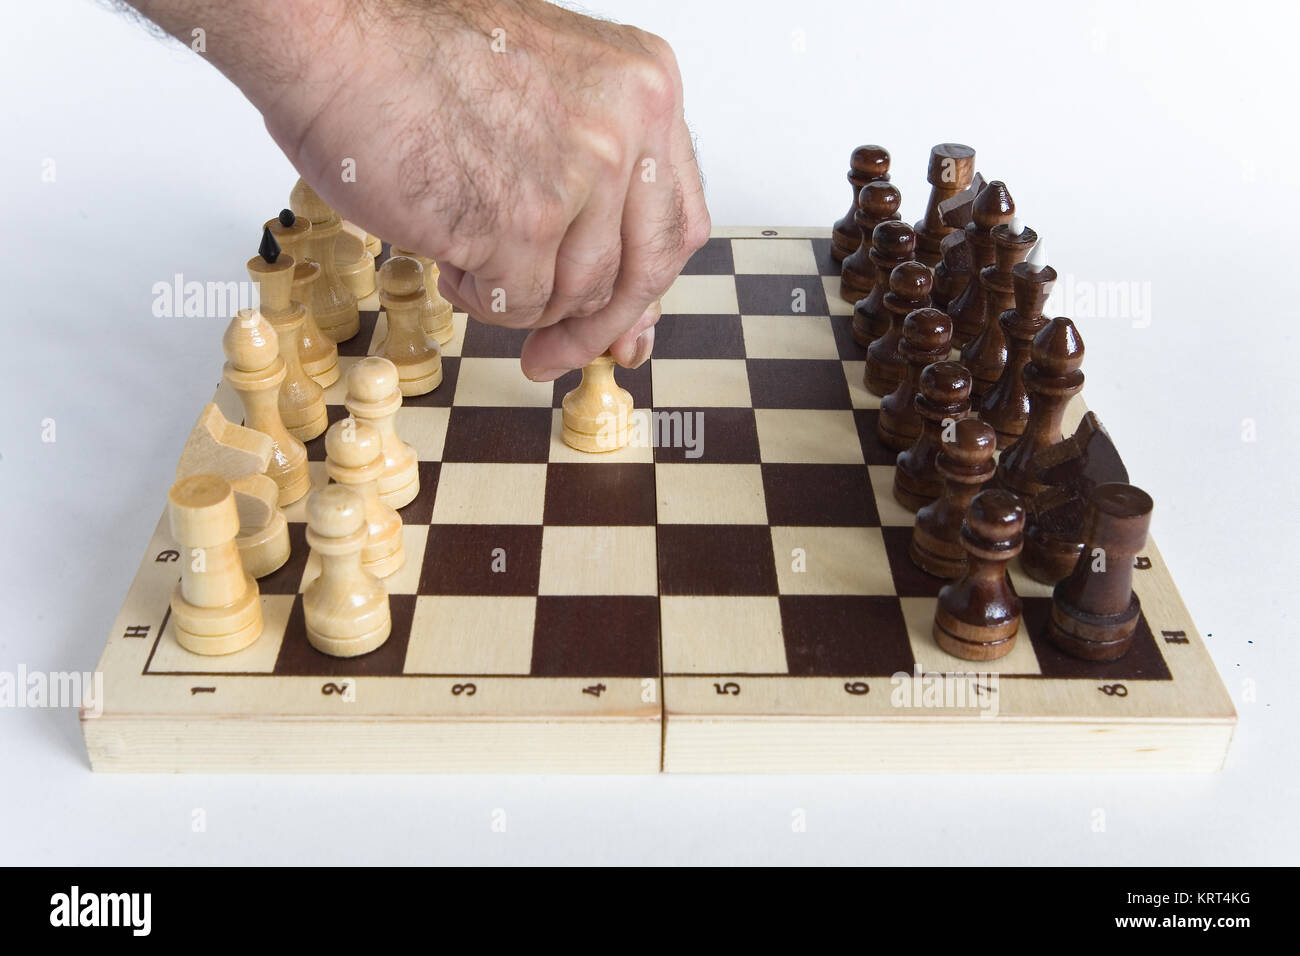 Chess. The man's hand makes the first move E2-E4. - Stock Image